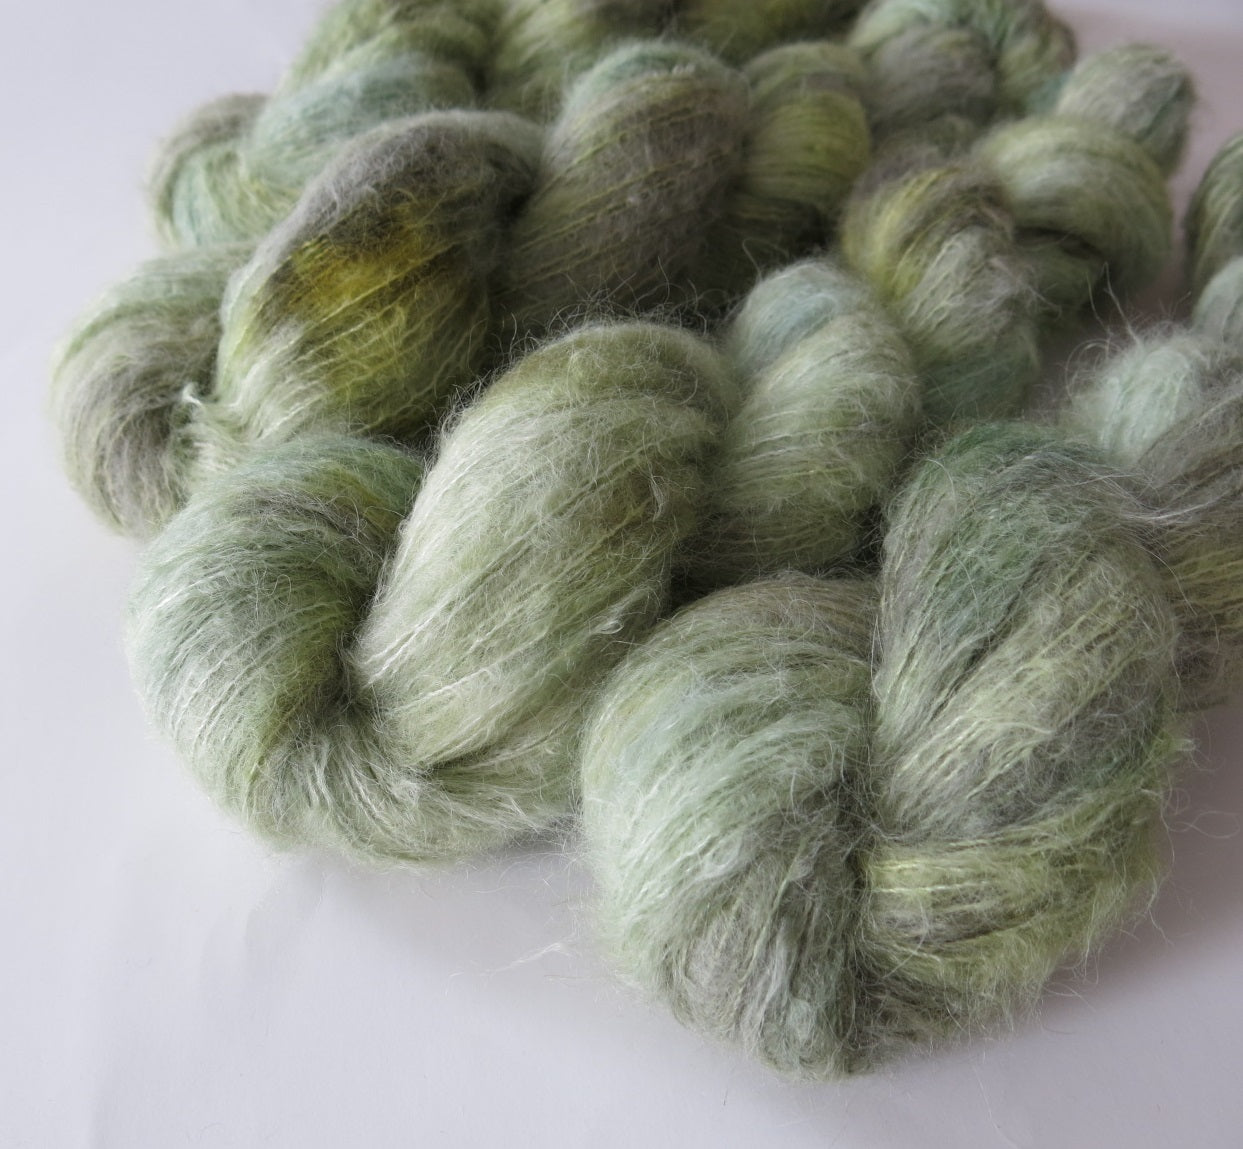 green glass indie dyed lace weight alpaca and silk yarn for knitting weaving and crochet